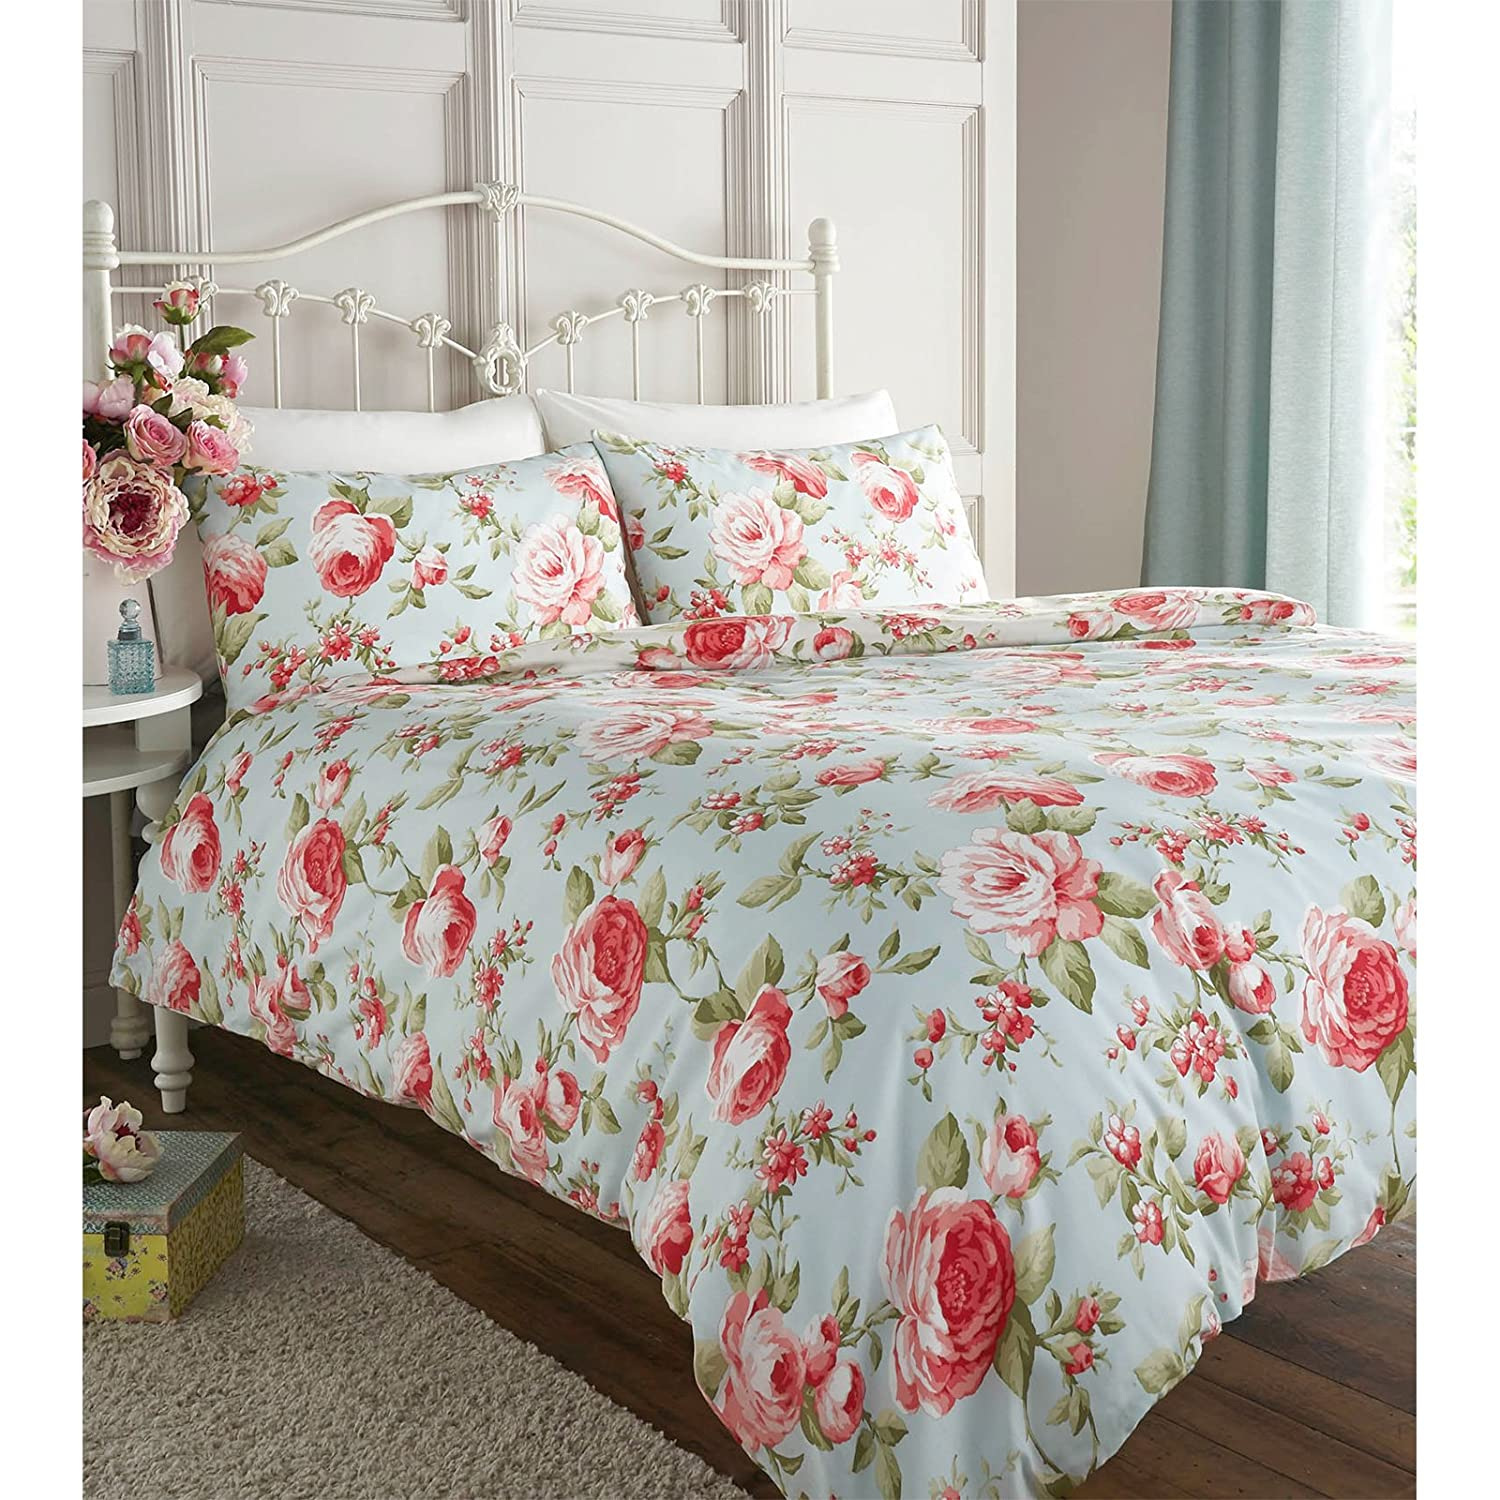 comforters gl antique victorian print p antiquerose twin bedspread vintage queen bedding king comforter set rose beige full quilt red floral